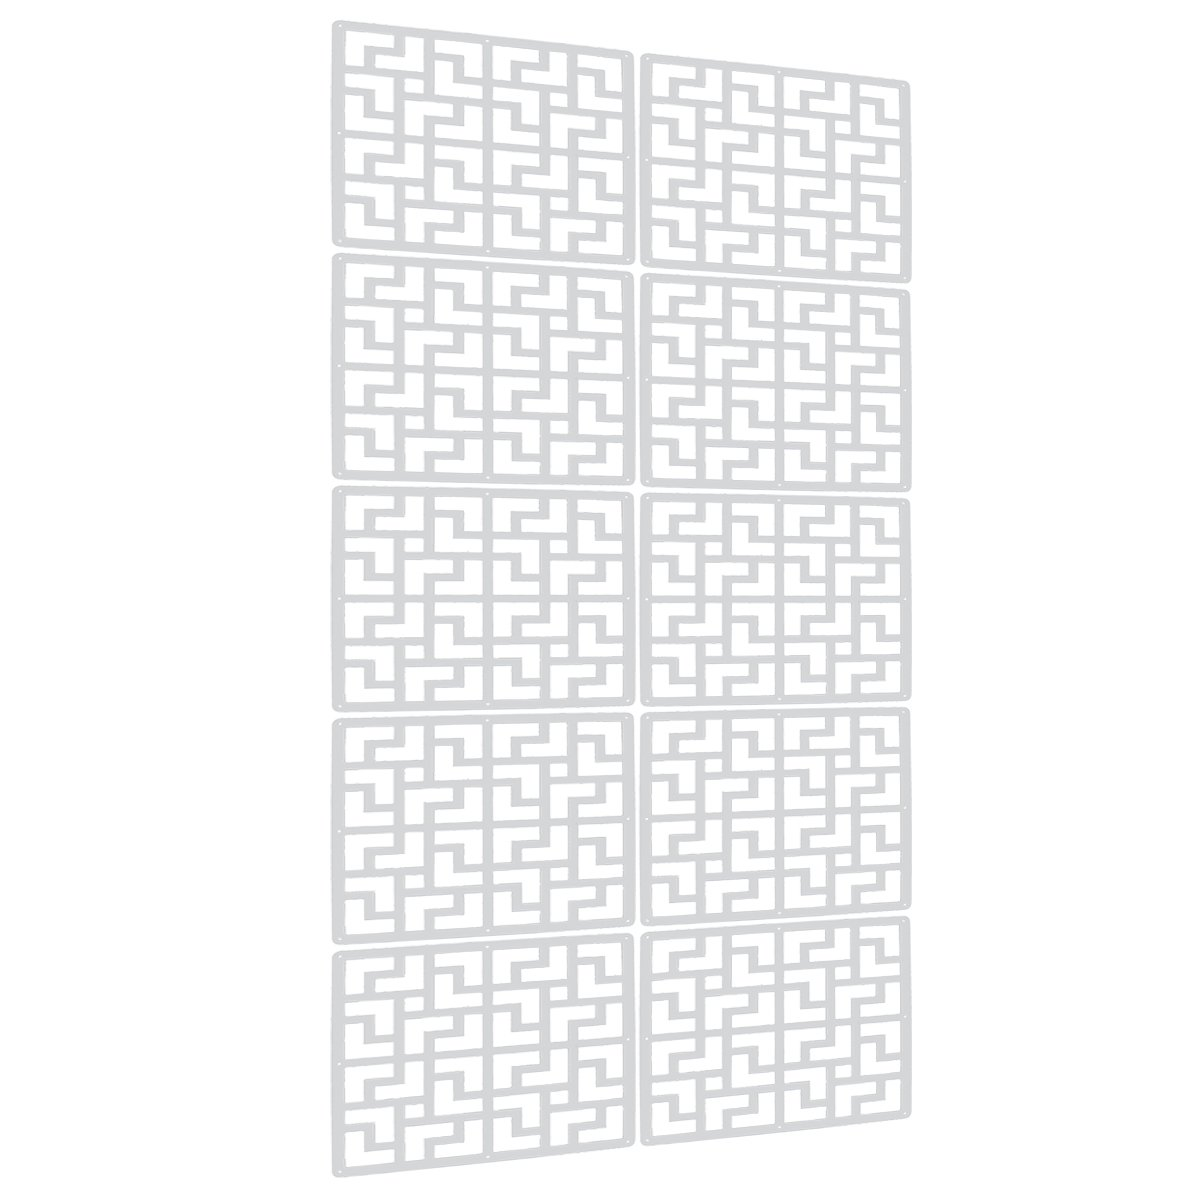 Lchen Hanging Room Divider,10Pieces Wood-Plastic 5mm Thick Screen Panel for Living Room and Beding Room (FY,11.4''X11.4'') by Lchen (Image #1)